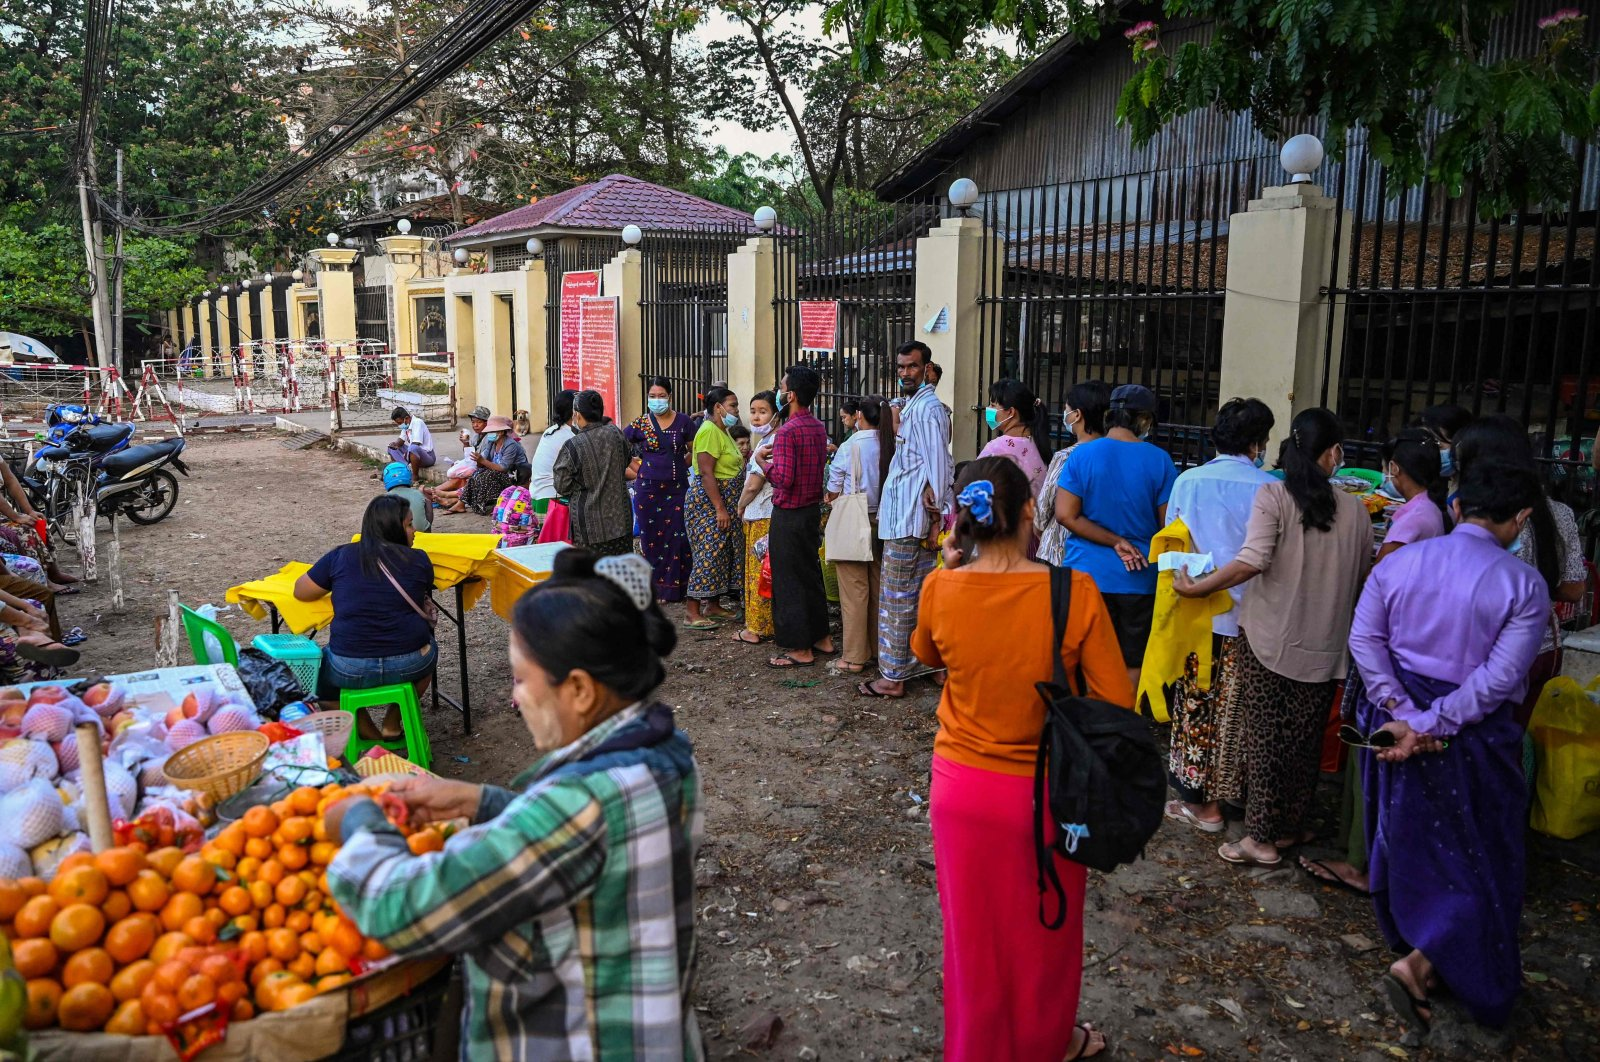 People queue in front of Insein Prison in Yangon while they wait to visit inmates ahead of the long holiday stretch for the Myanmar New Year, also known as Thingyan, as the country remains in turmoil after the February military coup, Yangon, Myanmar, April 12, 2021. (AFP Photo)